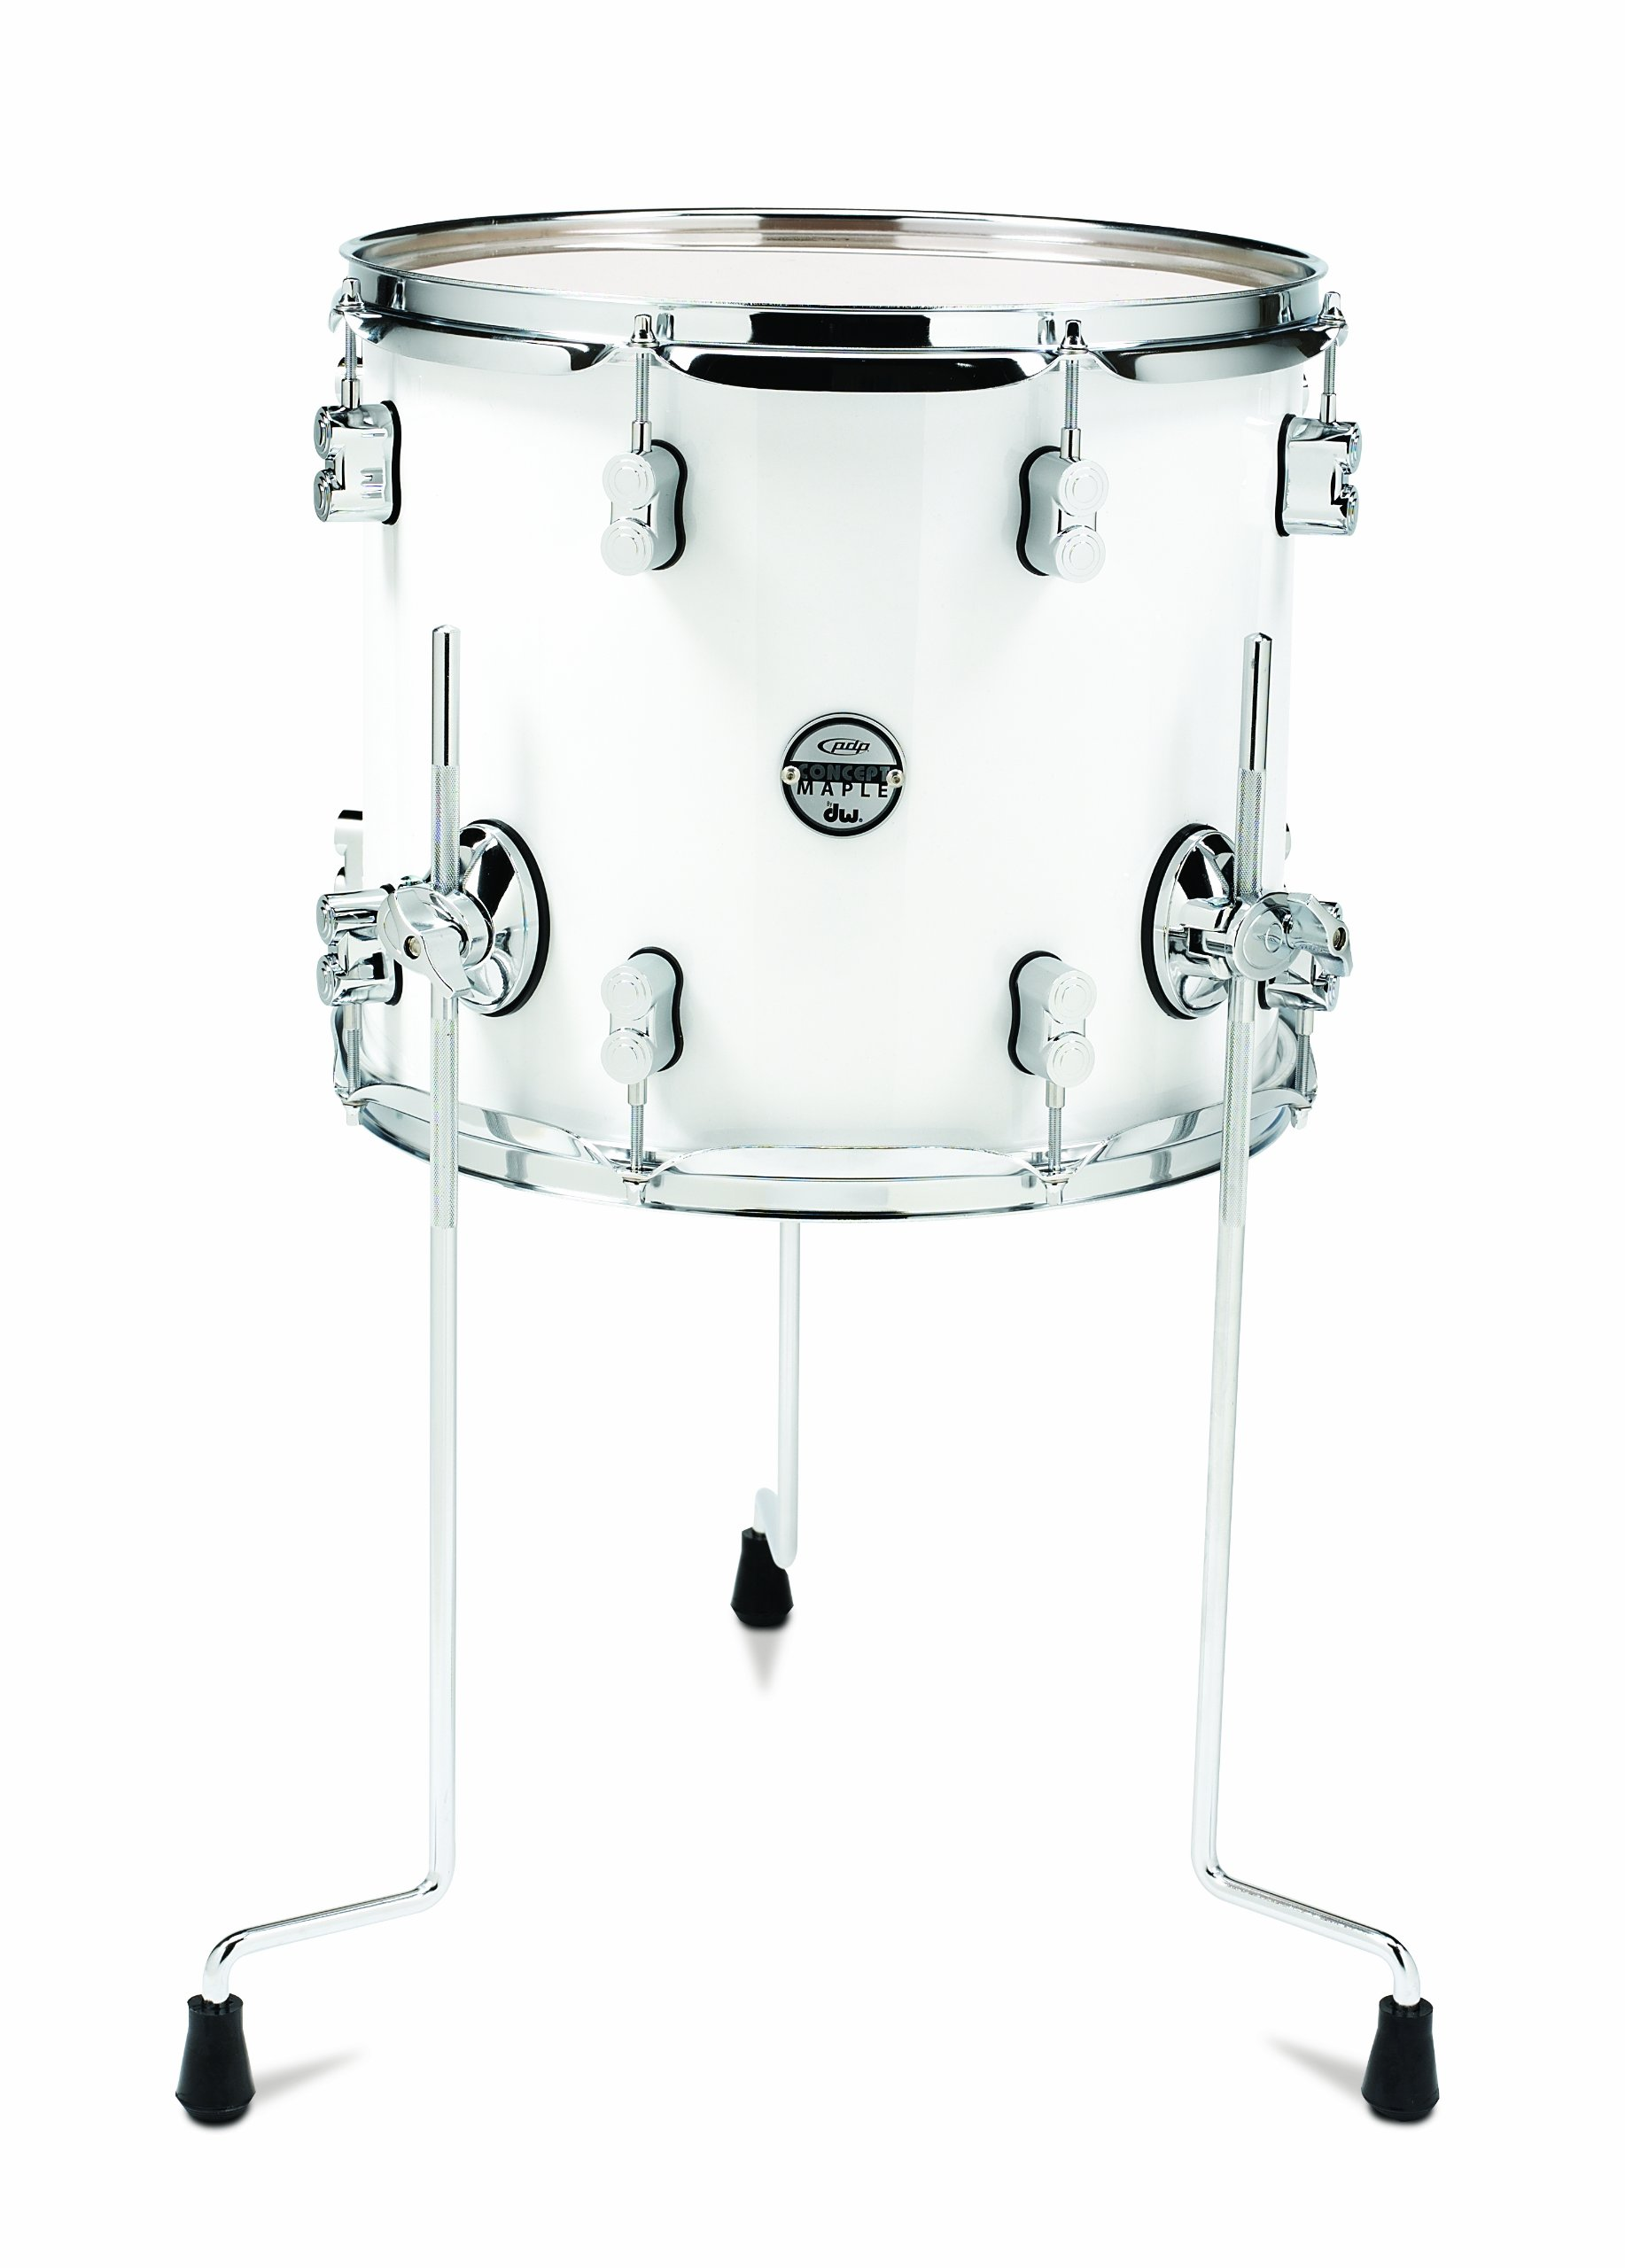 Pacific Drums PDCM1214TTPW 12 x 14 Inches Floor Tom with Chrome Hardware - Pearlescent White by Pacific Drums